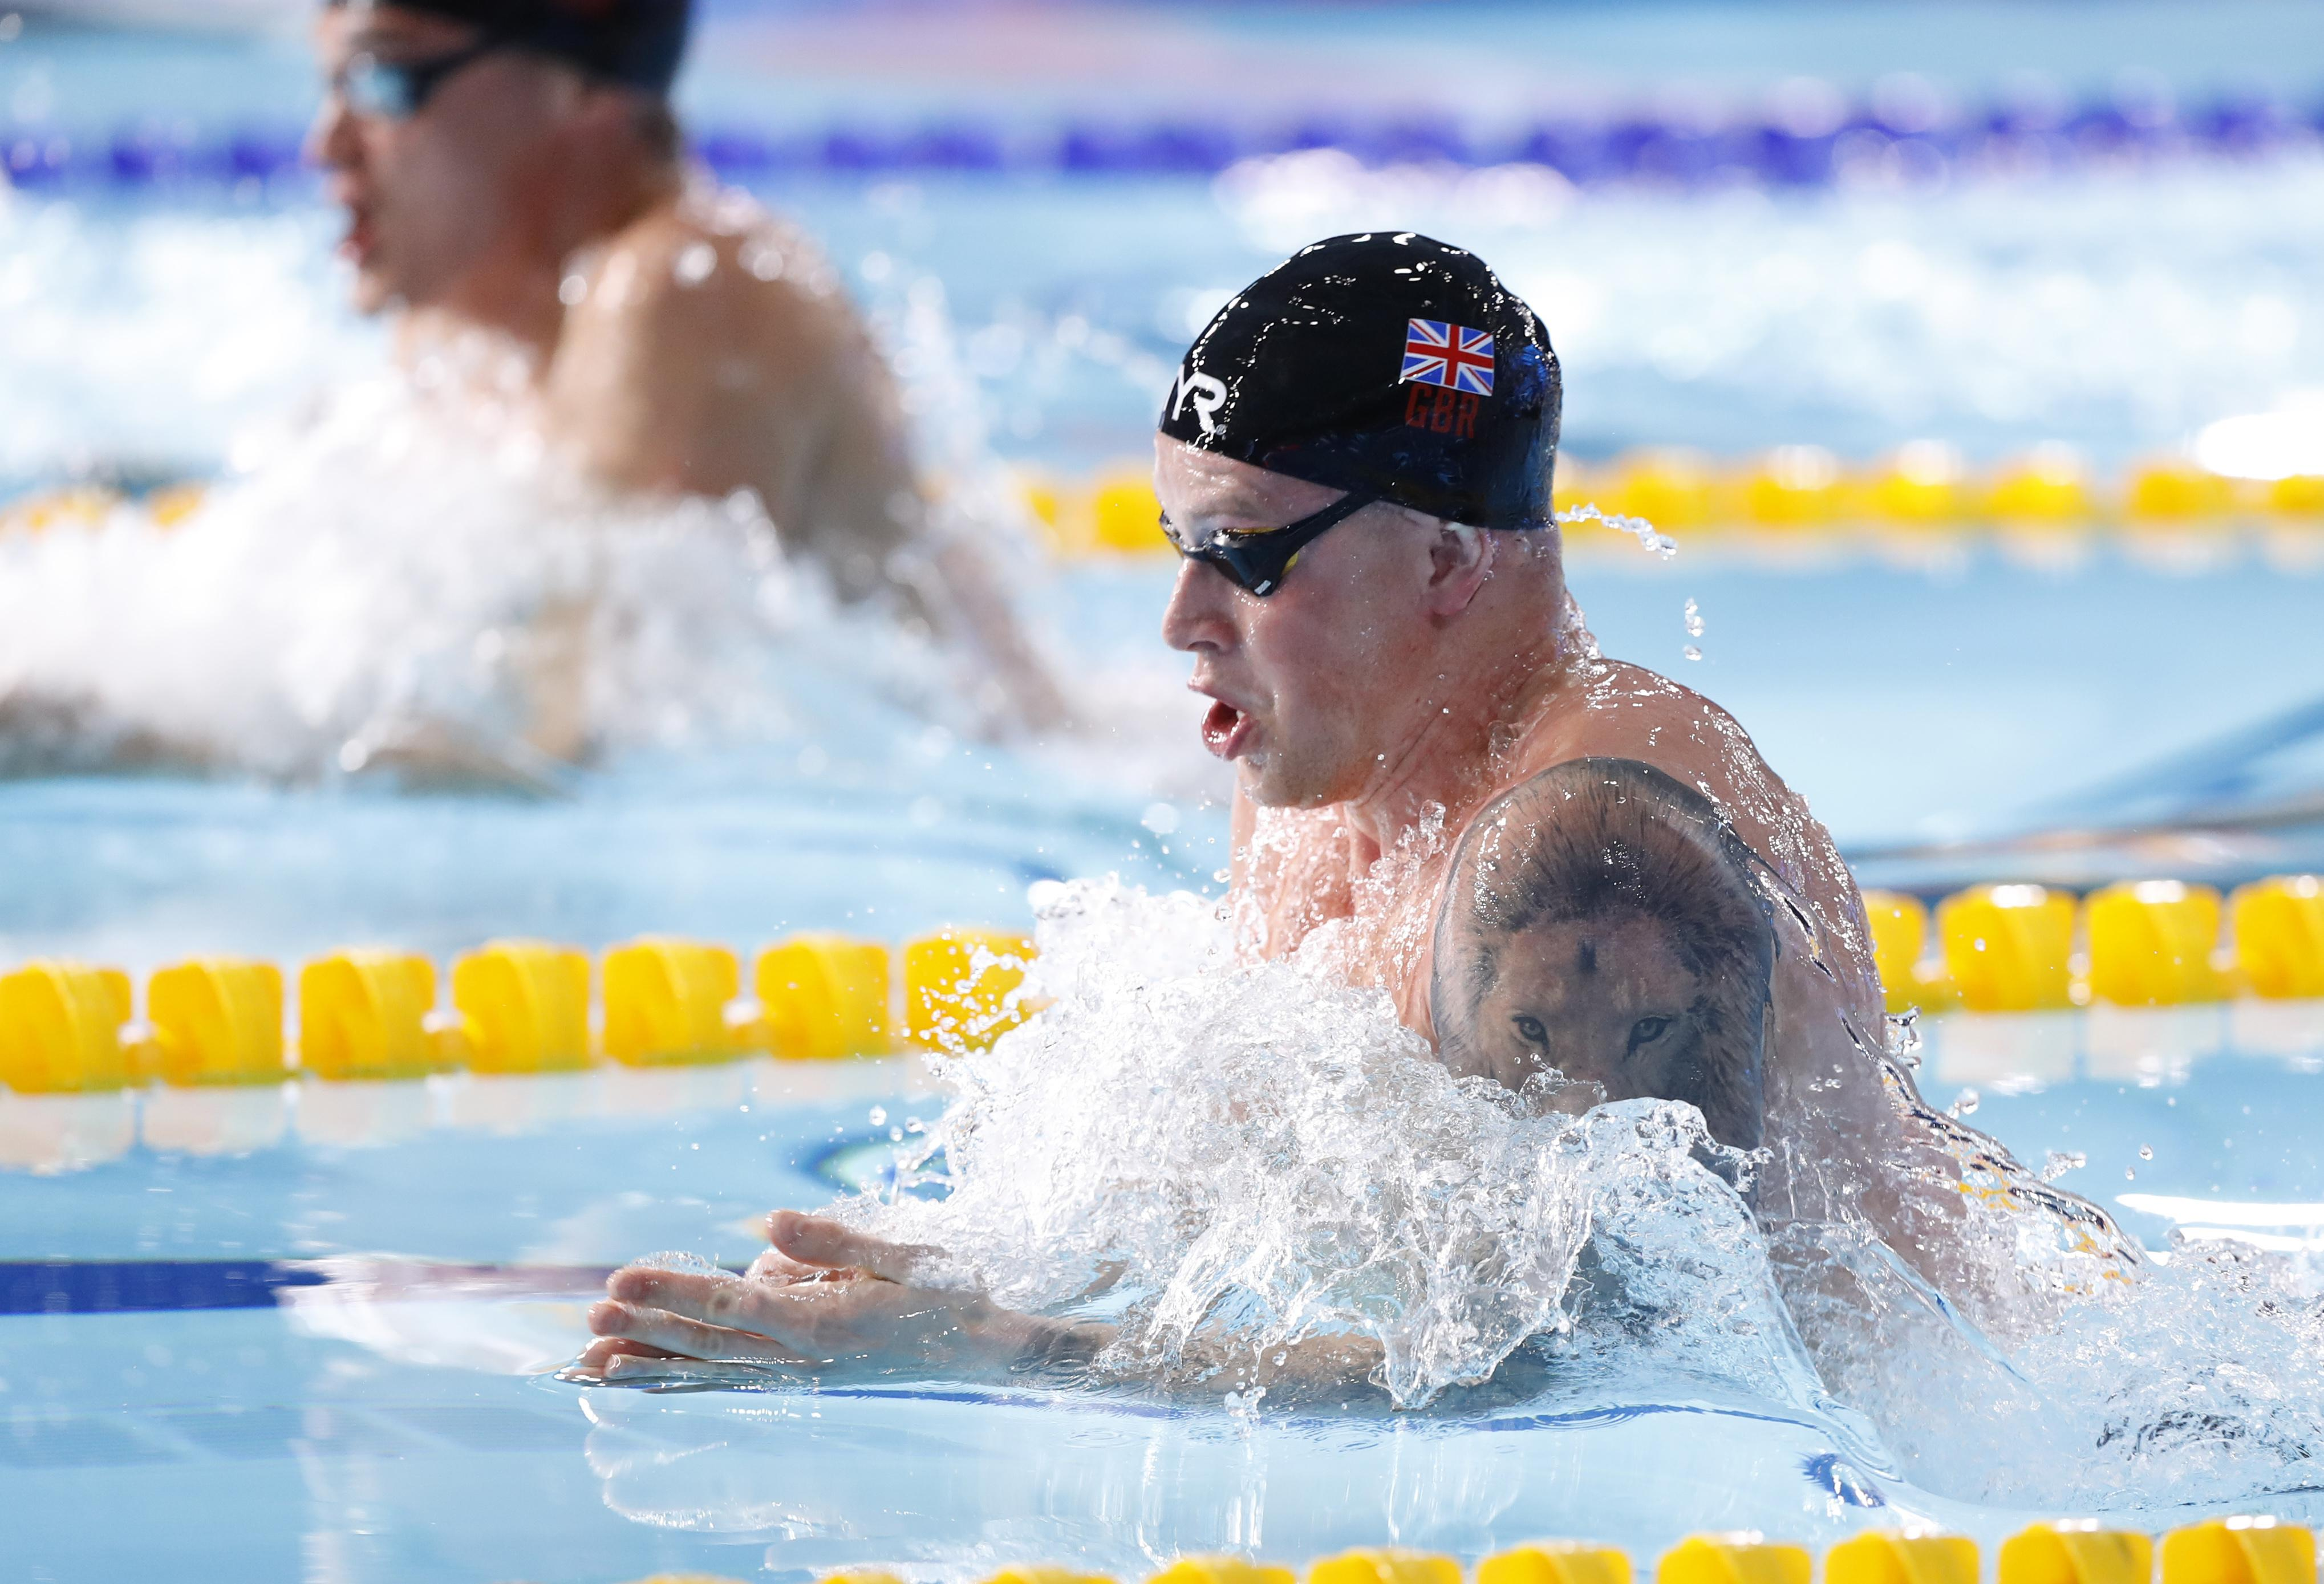 Peaty lowered his own world record on the way to defending his European title